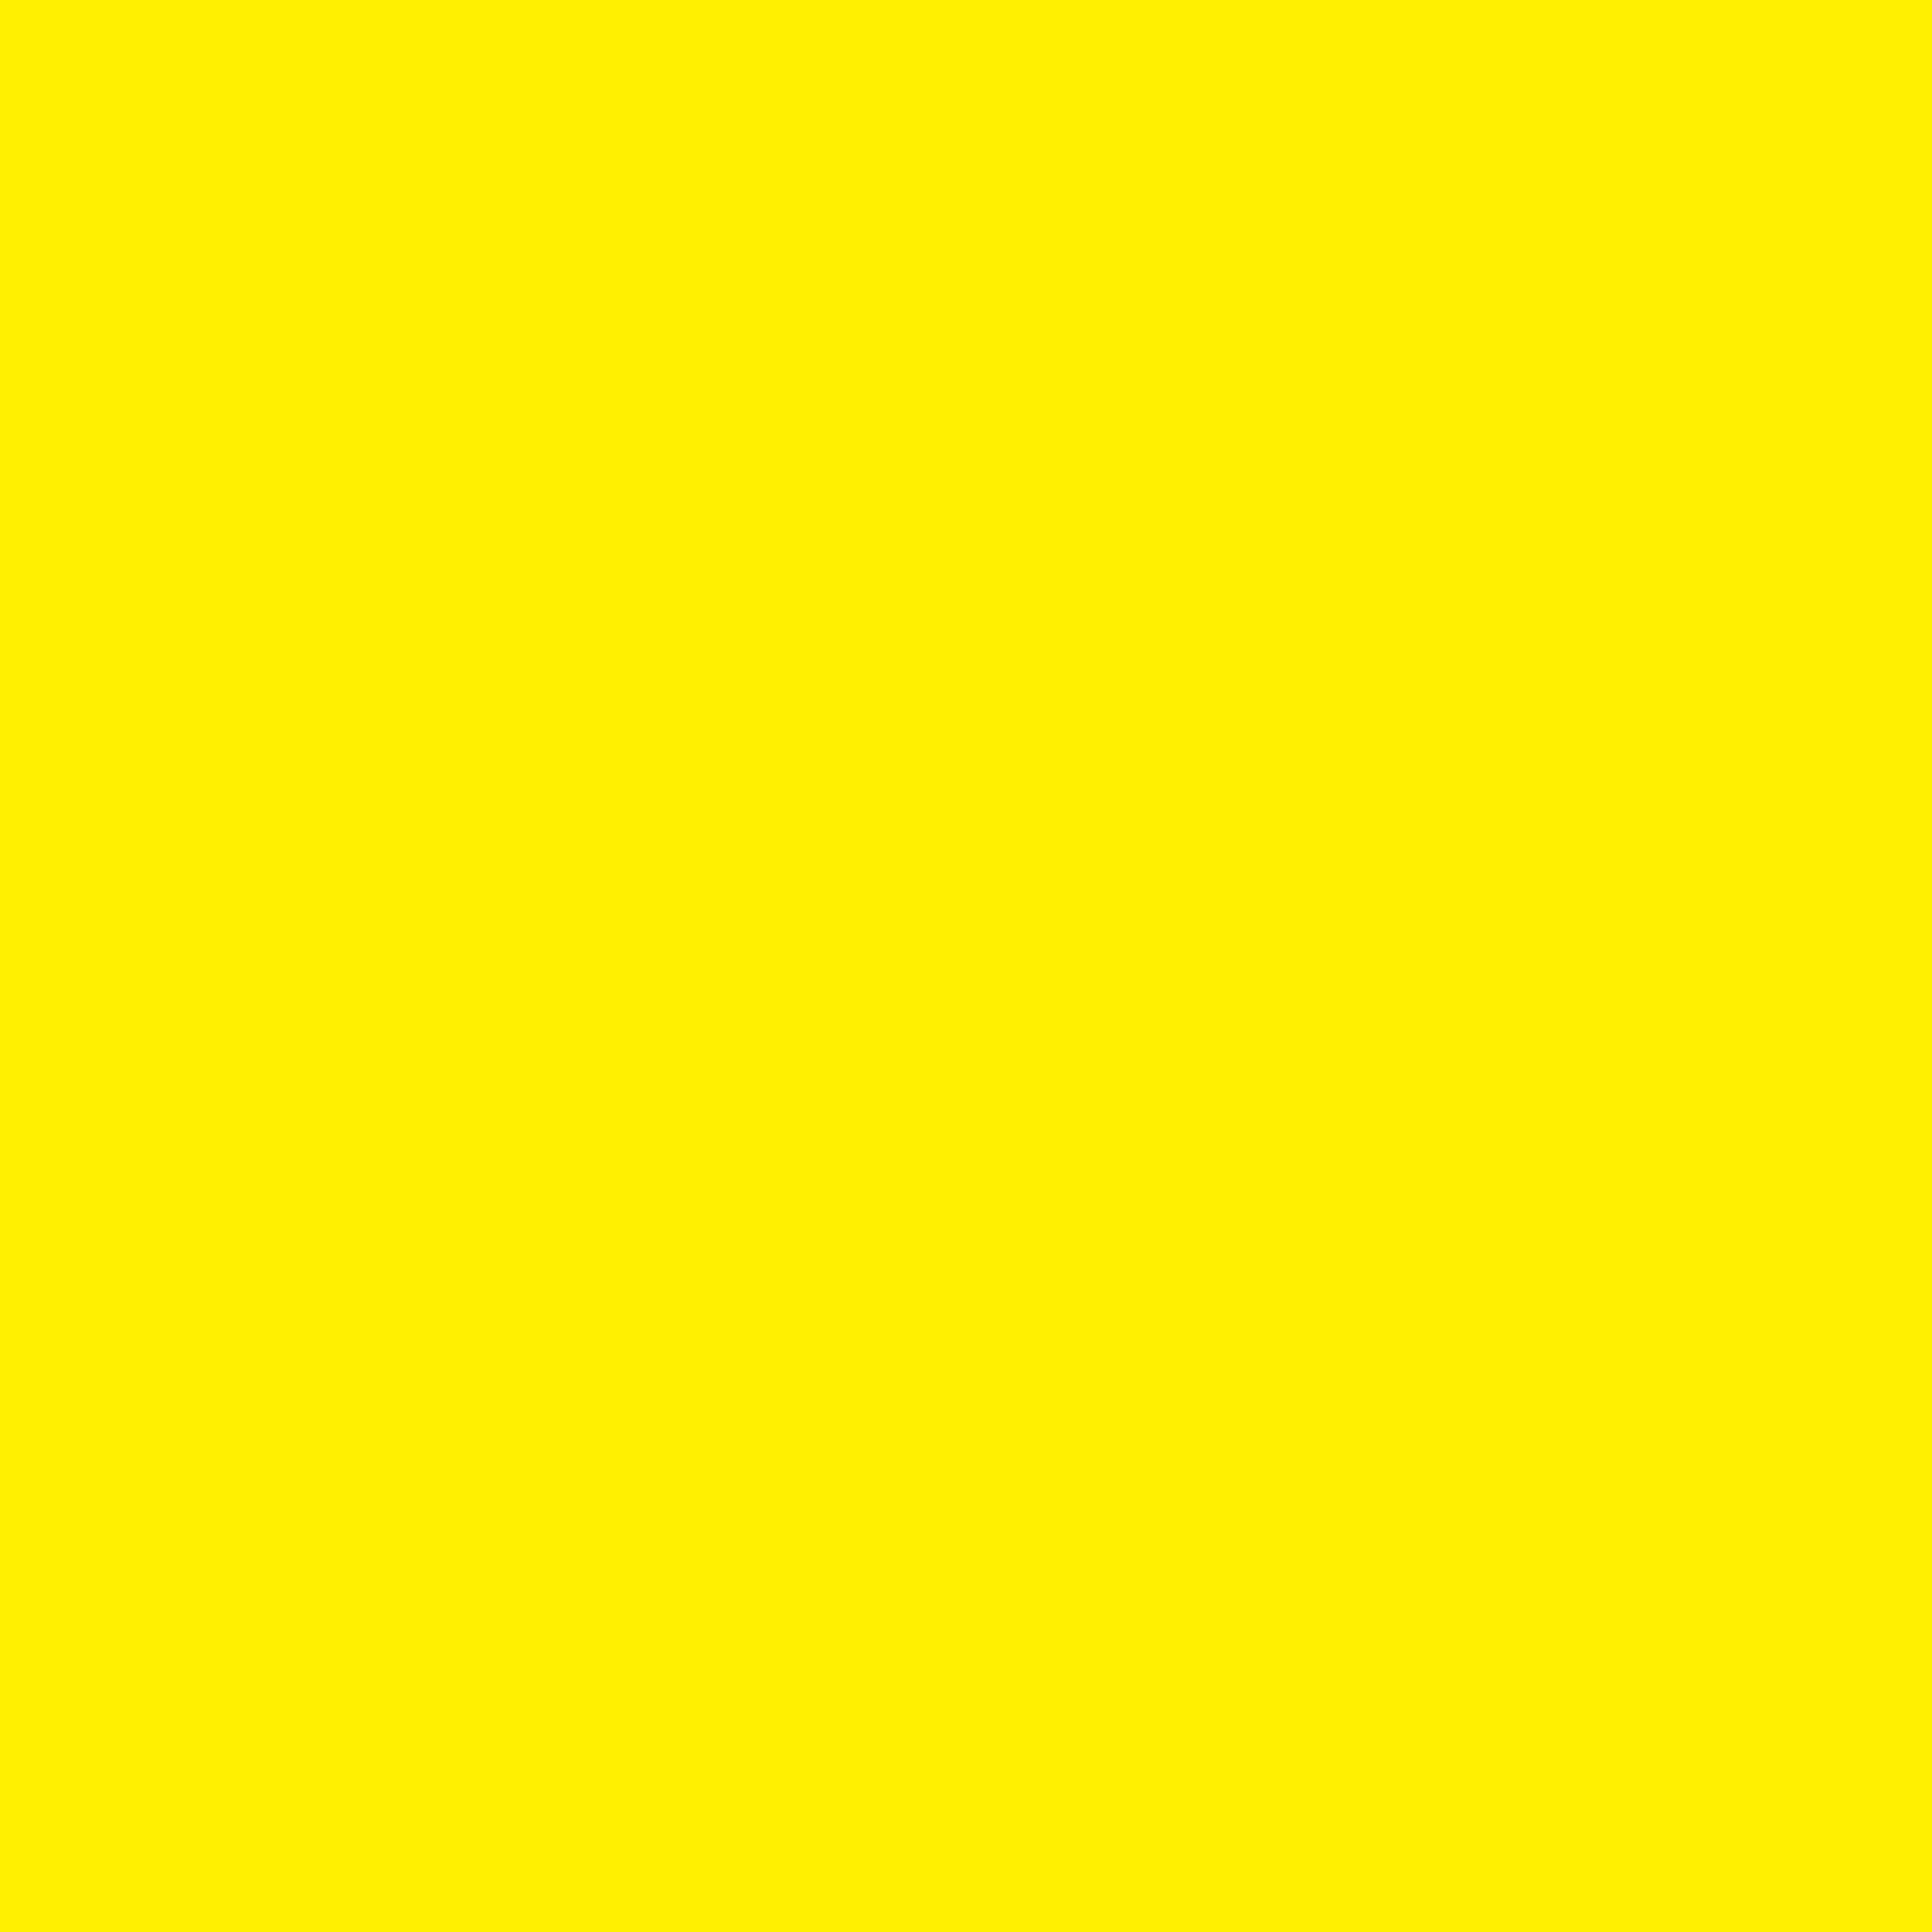 2732x2732 Canary Yellow Solid Color Background